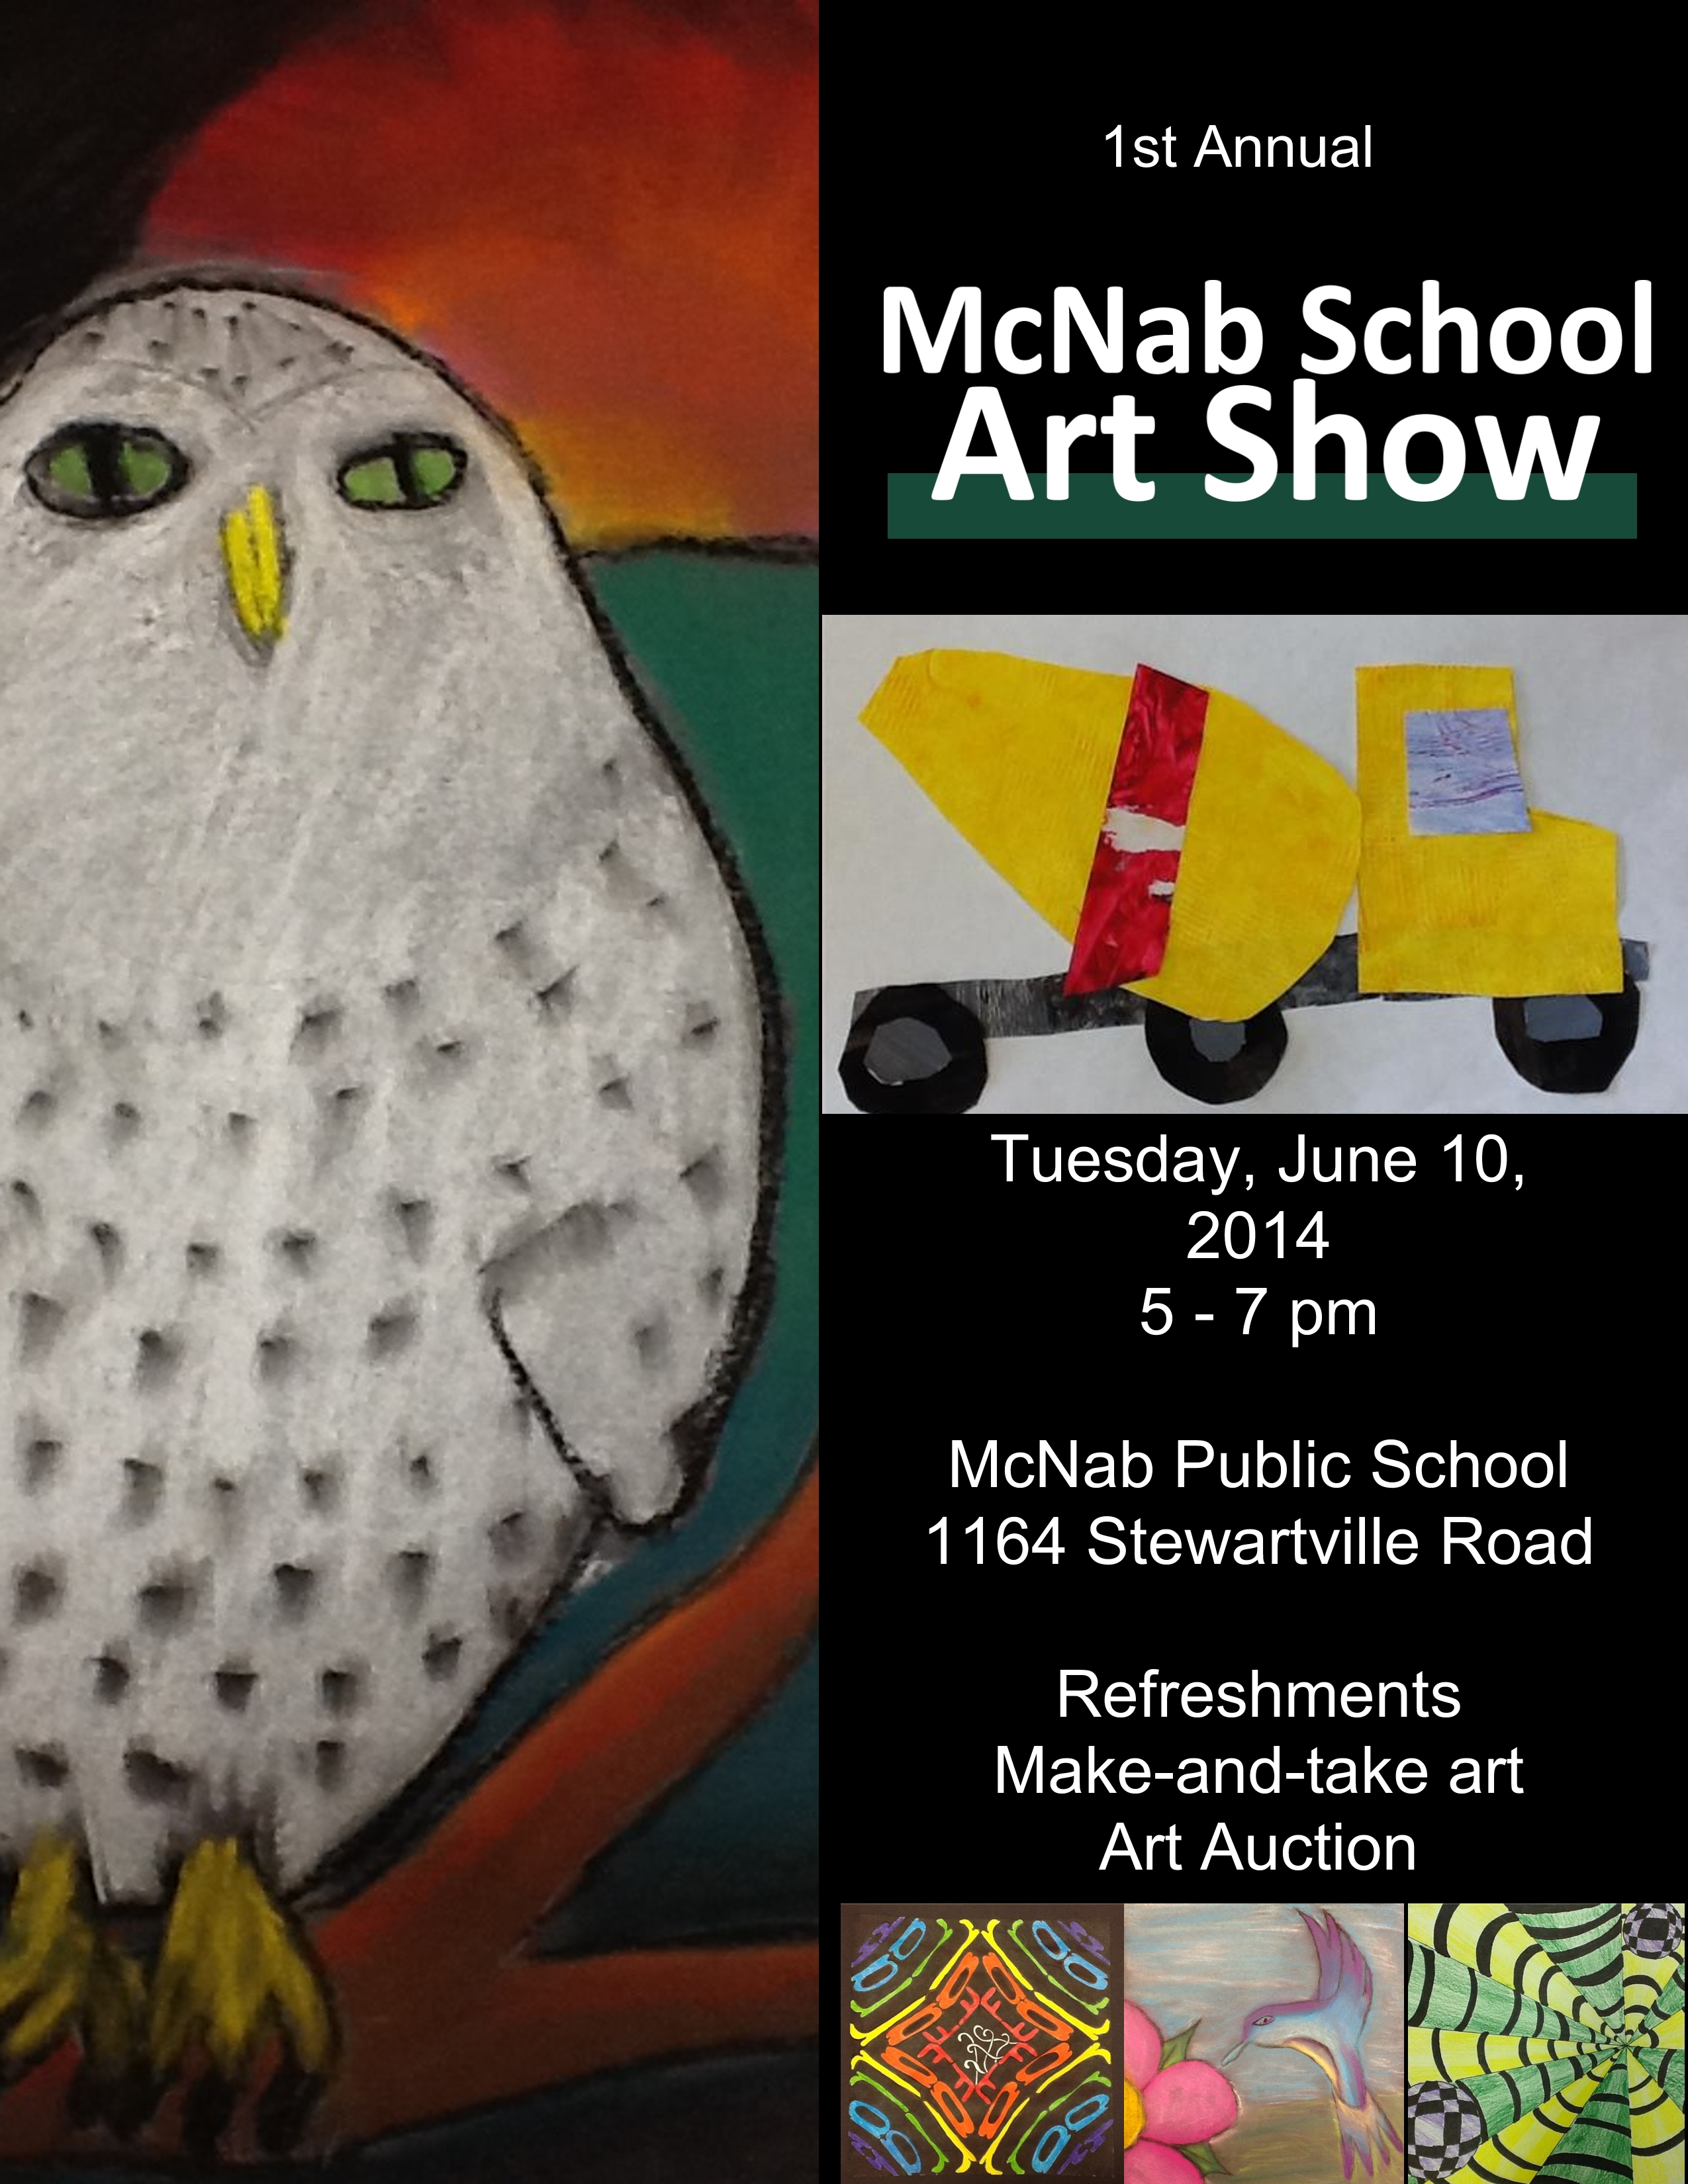 Art Show Poster indicating McNab's upcoming art show